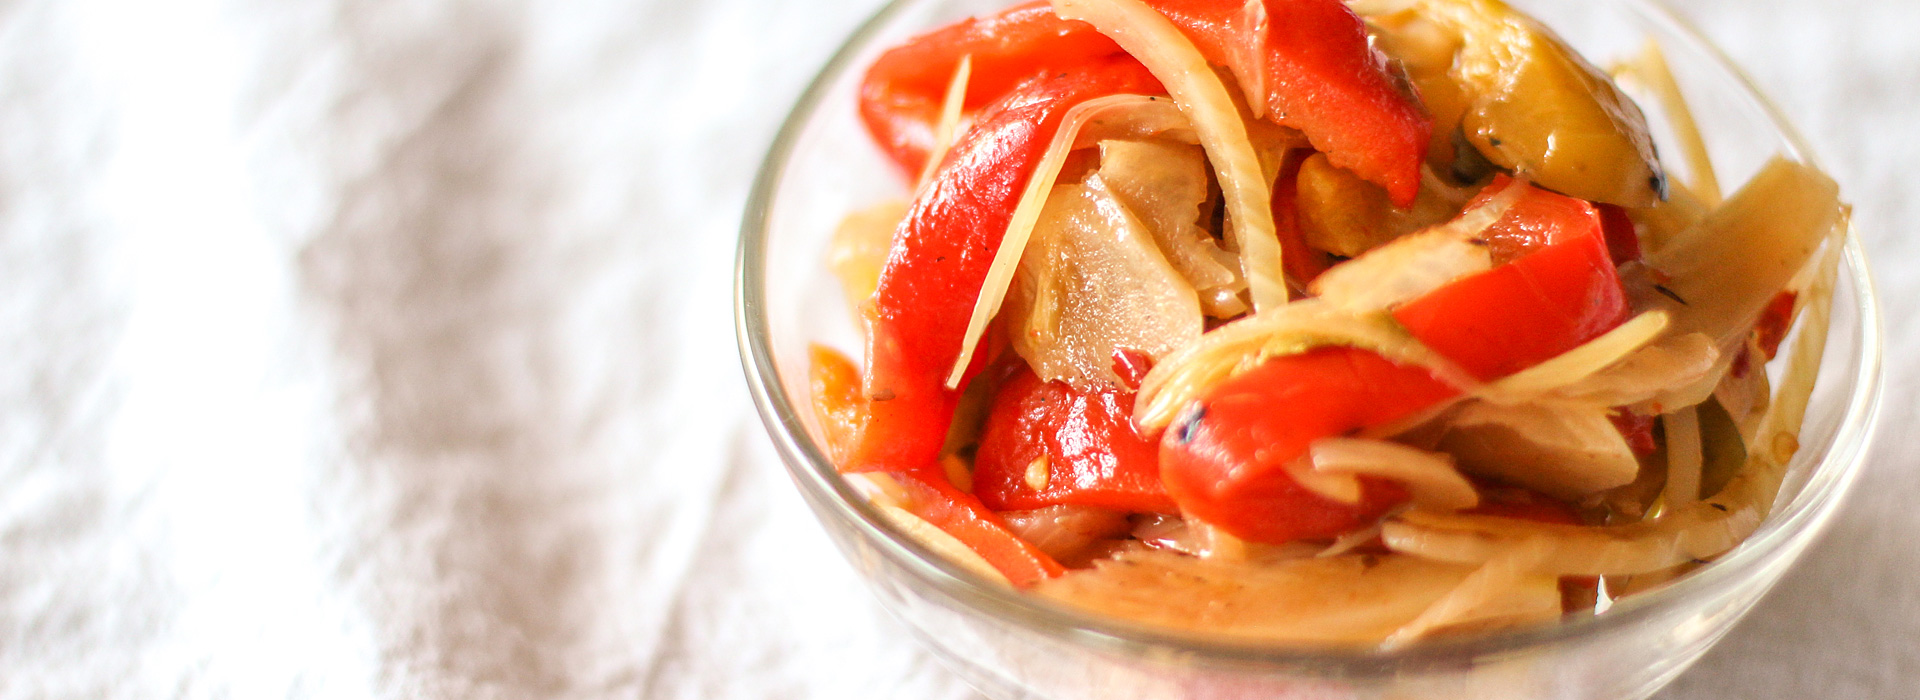 <p>The roasted peppers and capers in peperonata make the condiment perfect for topping meatballs or used in a sandwich. A small amount of fresh plum concentrate helps to brighten flavors and extend the refrigerated shelf life.</p>